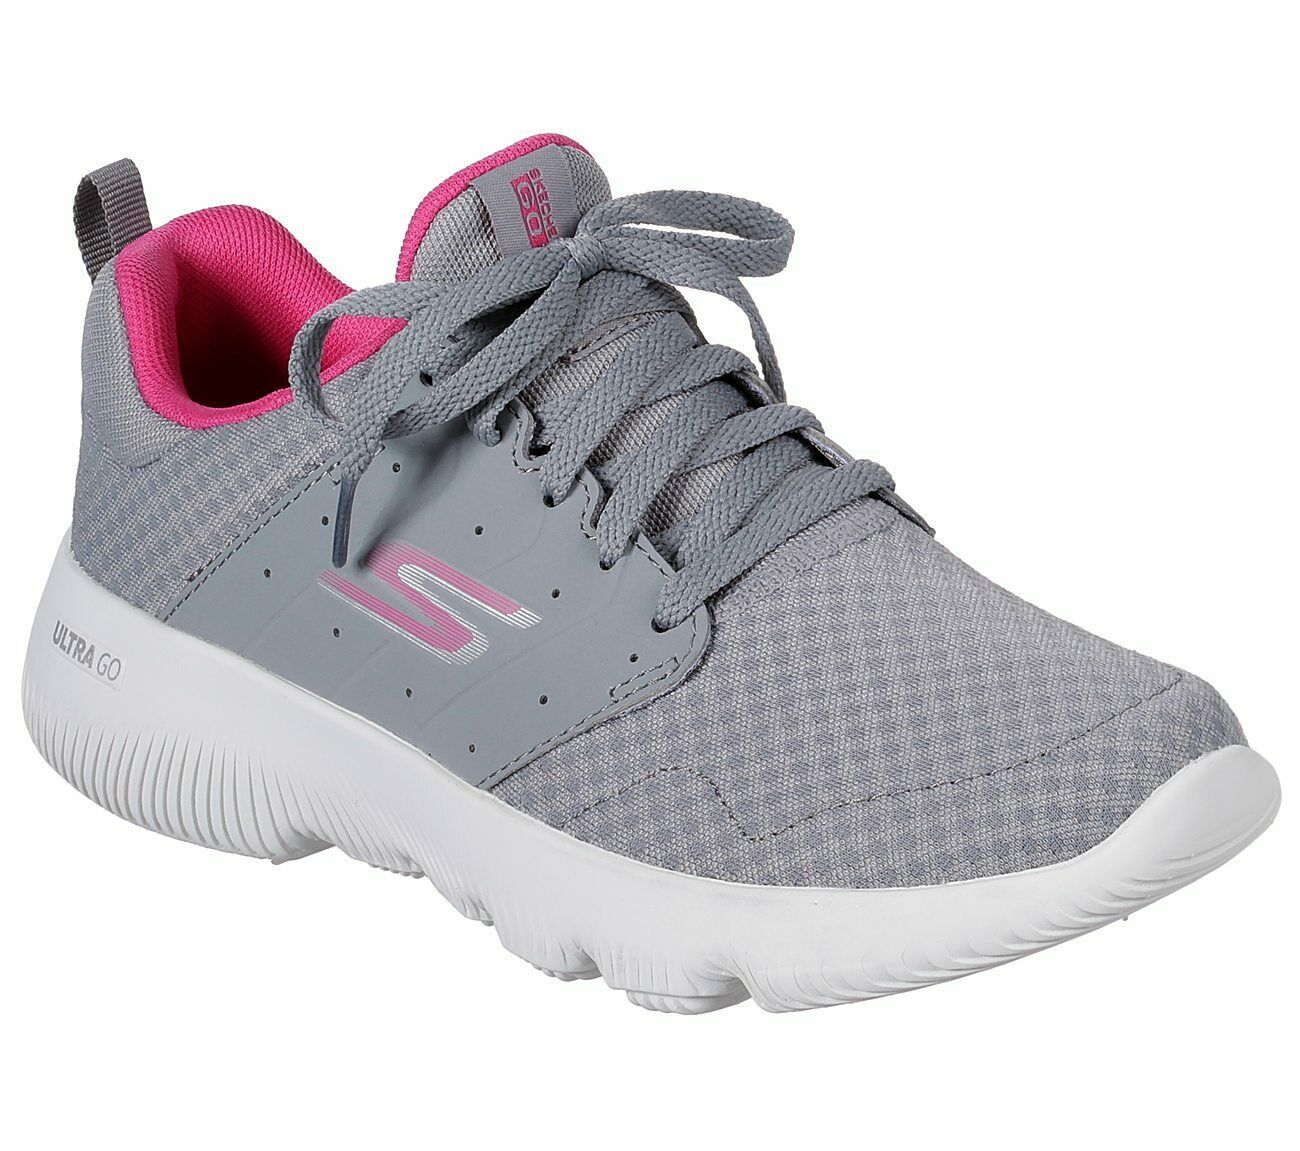 Primary image for Skechers Gray Pink shoes Women's Sport Go Run Athletic Mesh Comfort Casual 15162